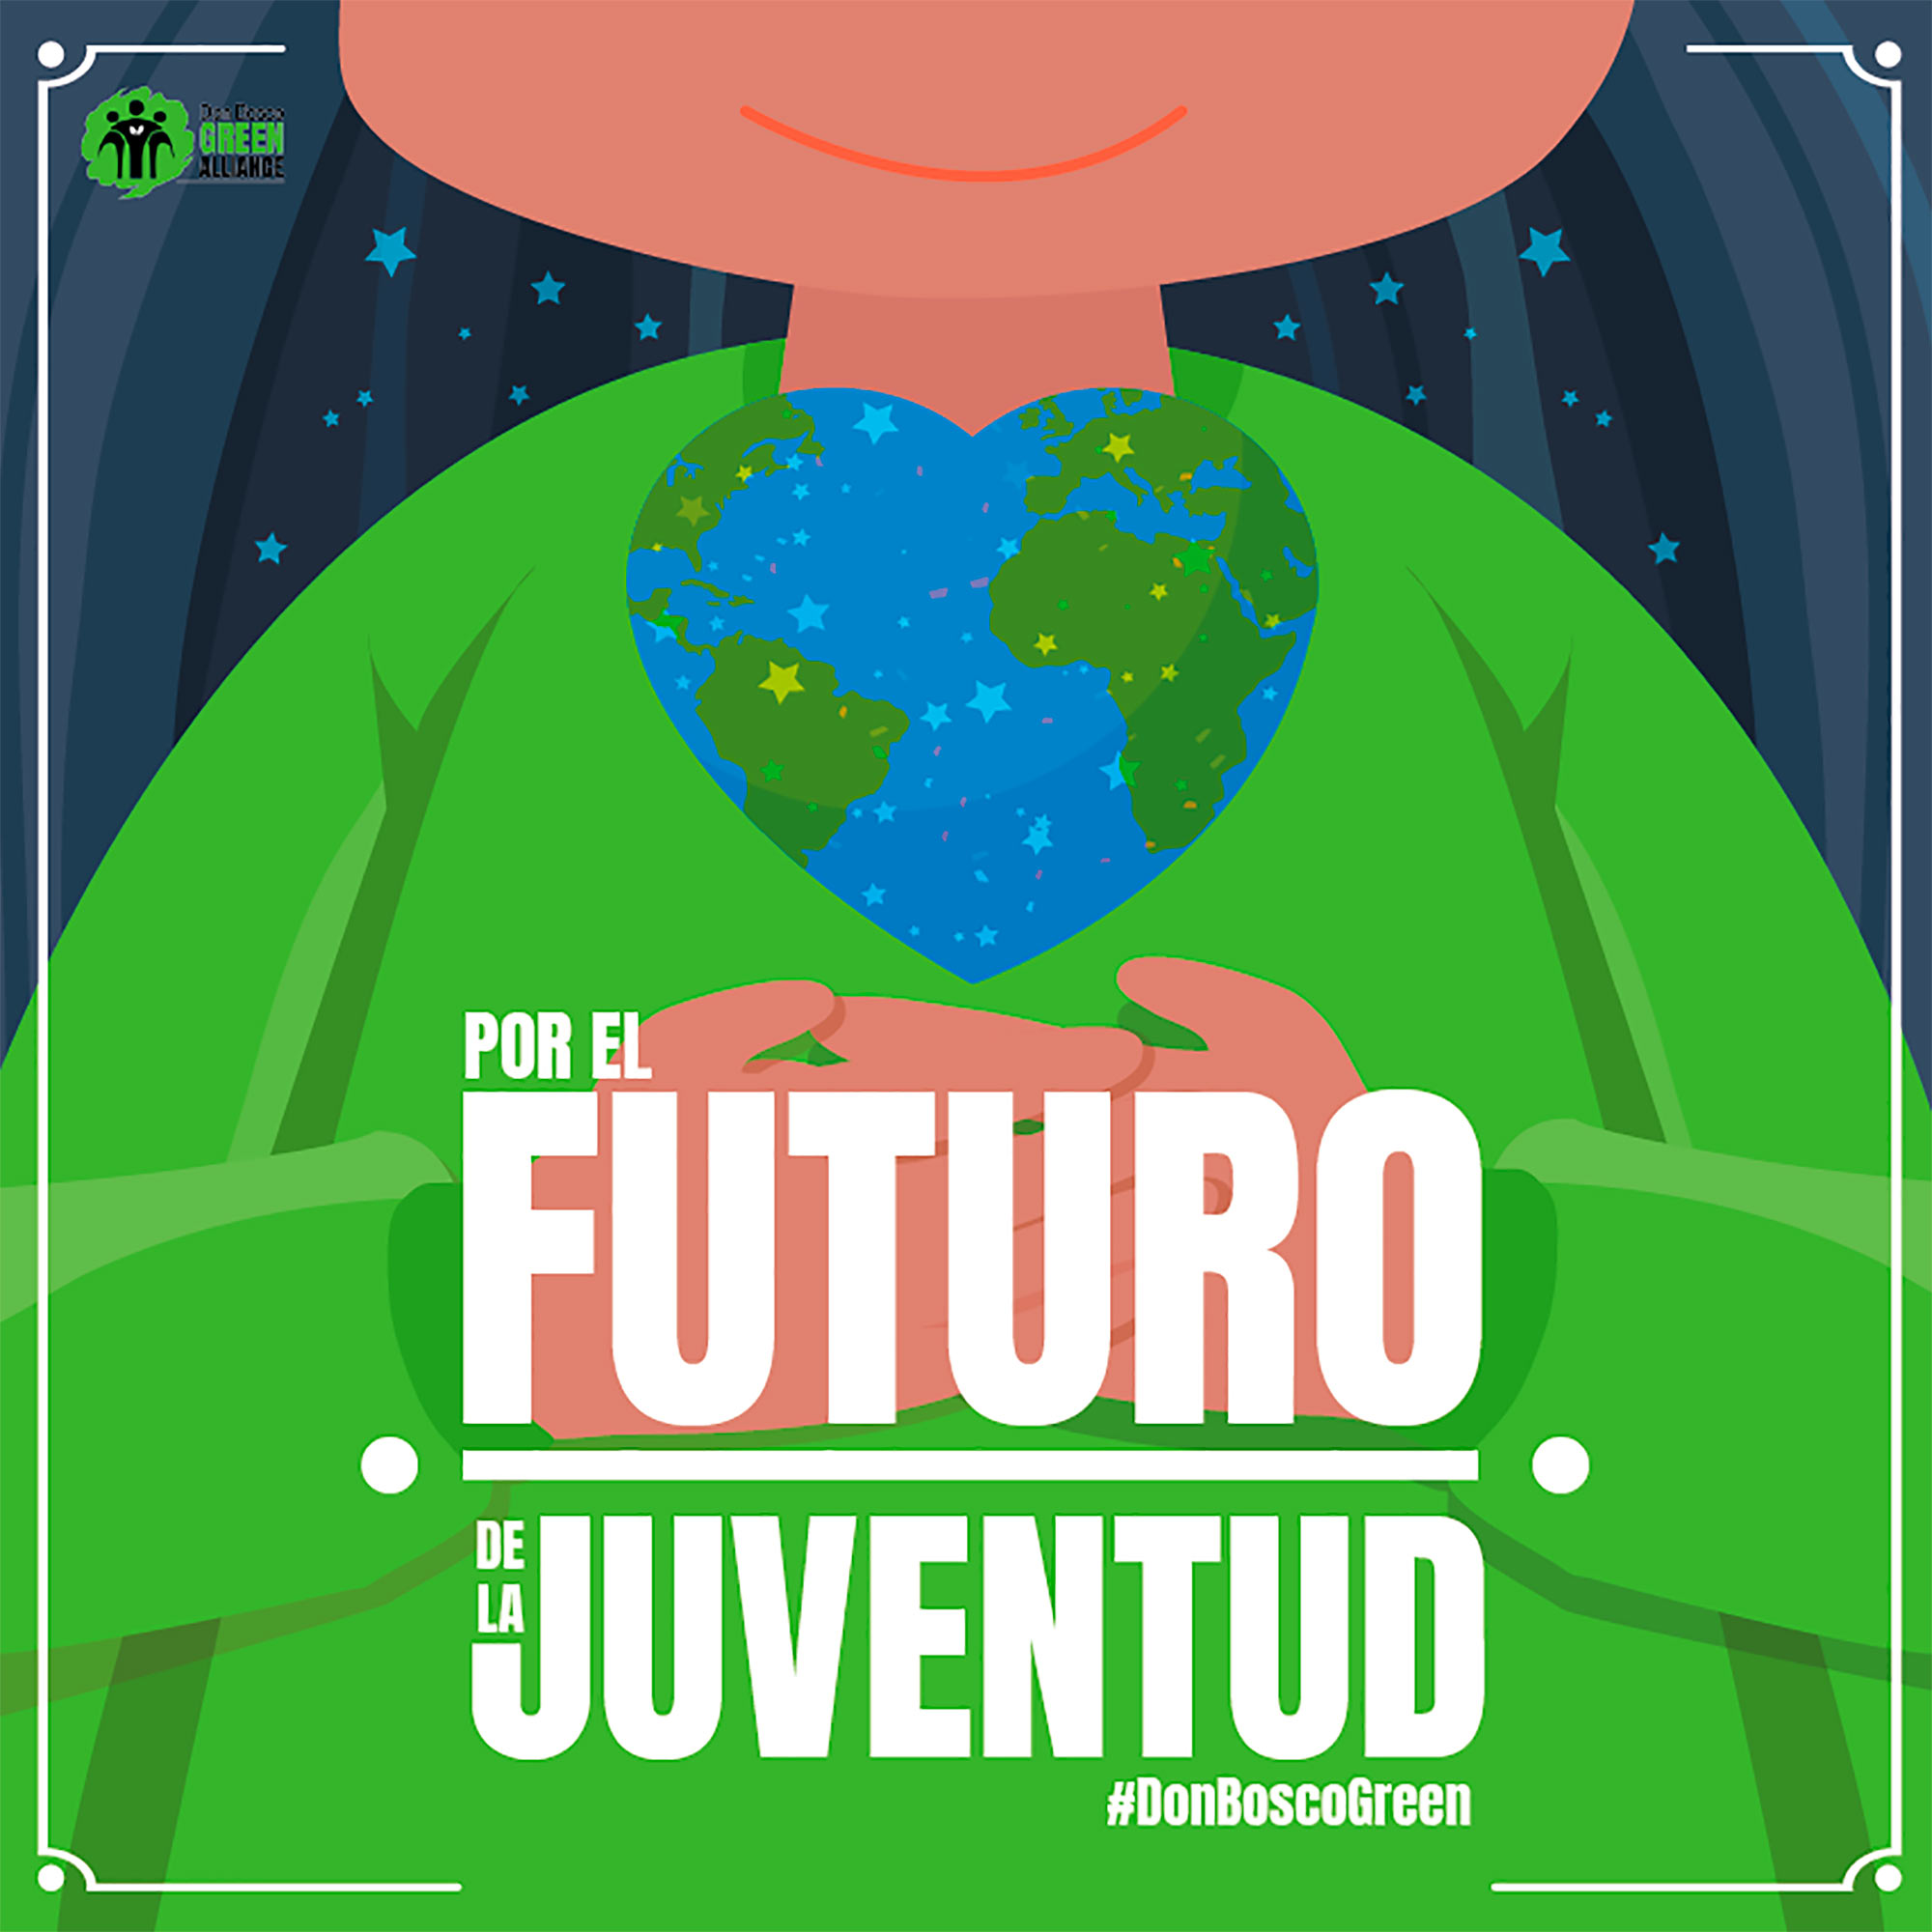 Don Bosco Green Alliance: Por el Futuro de la Juventud